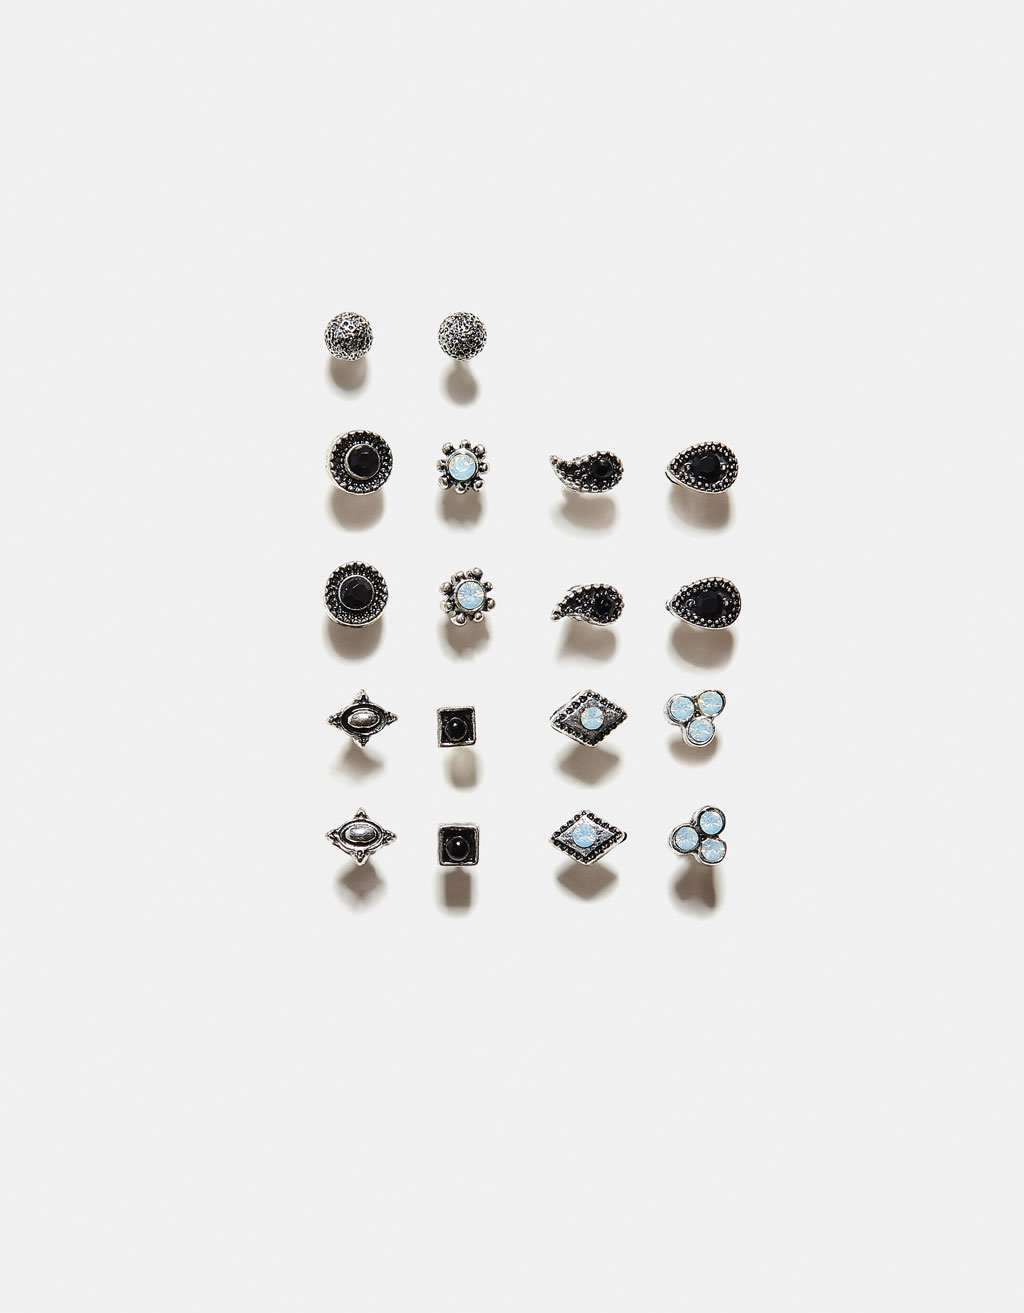 Pack of earrings with stones